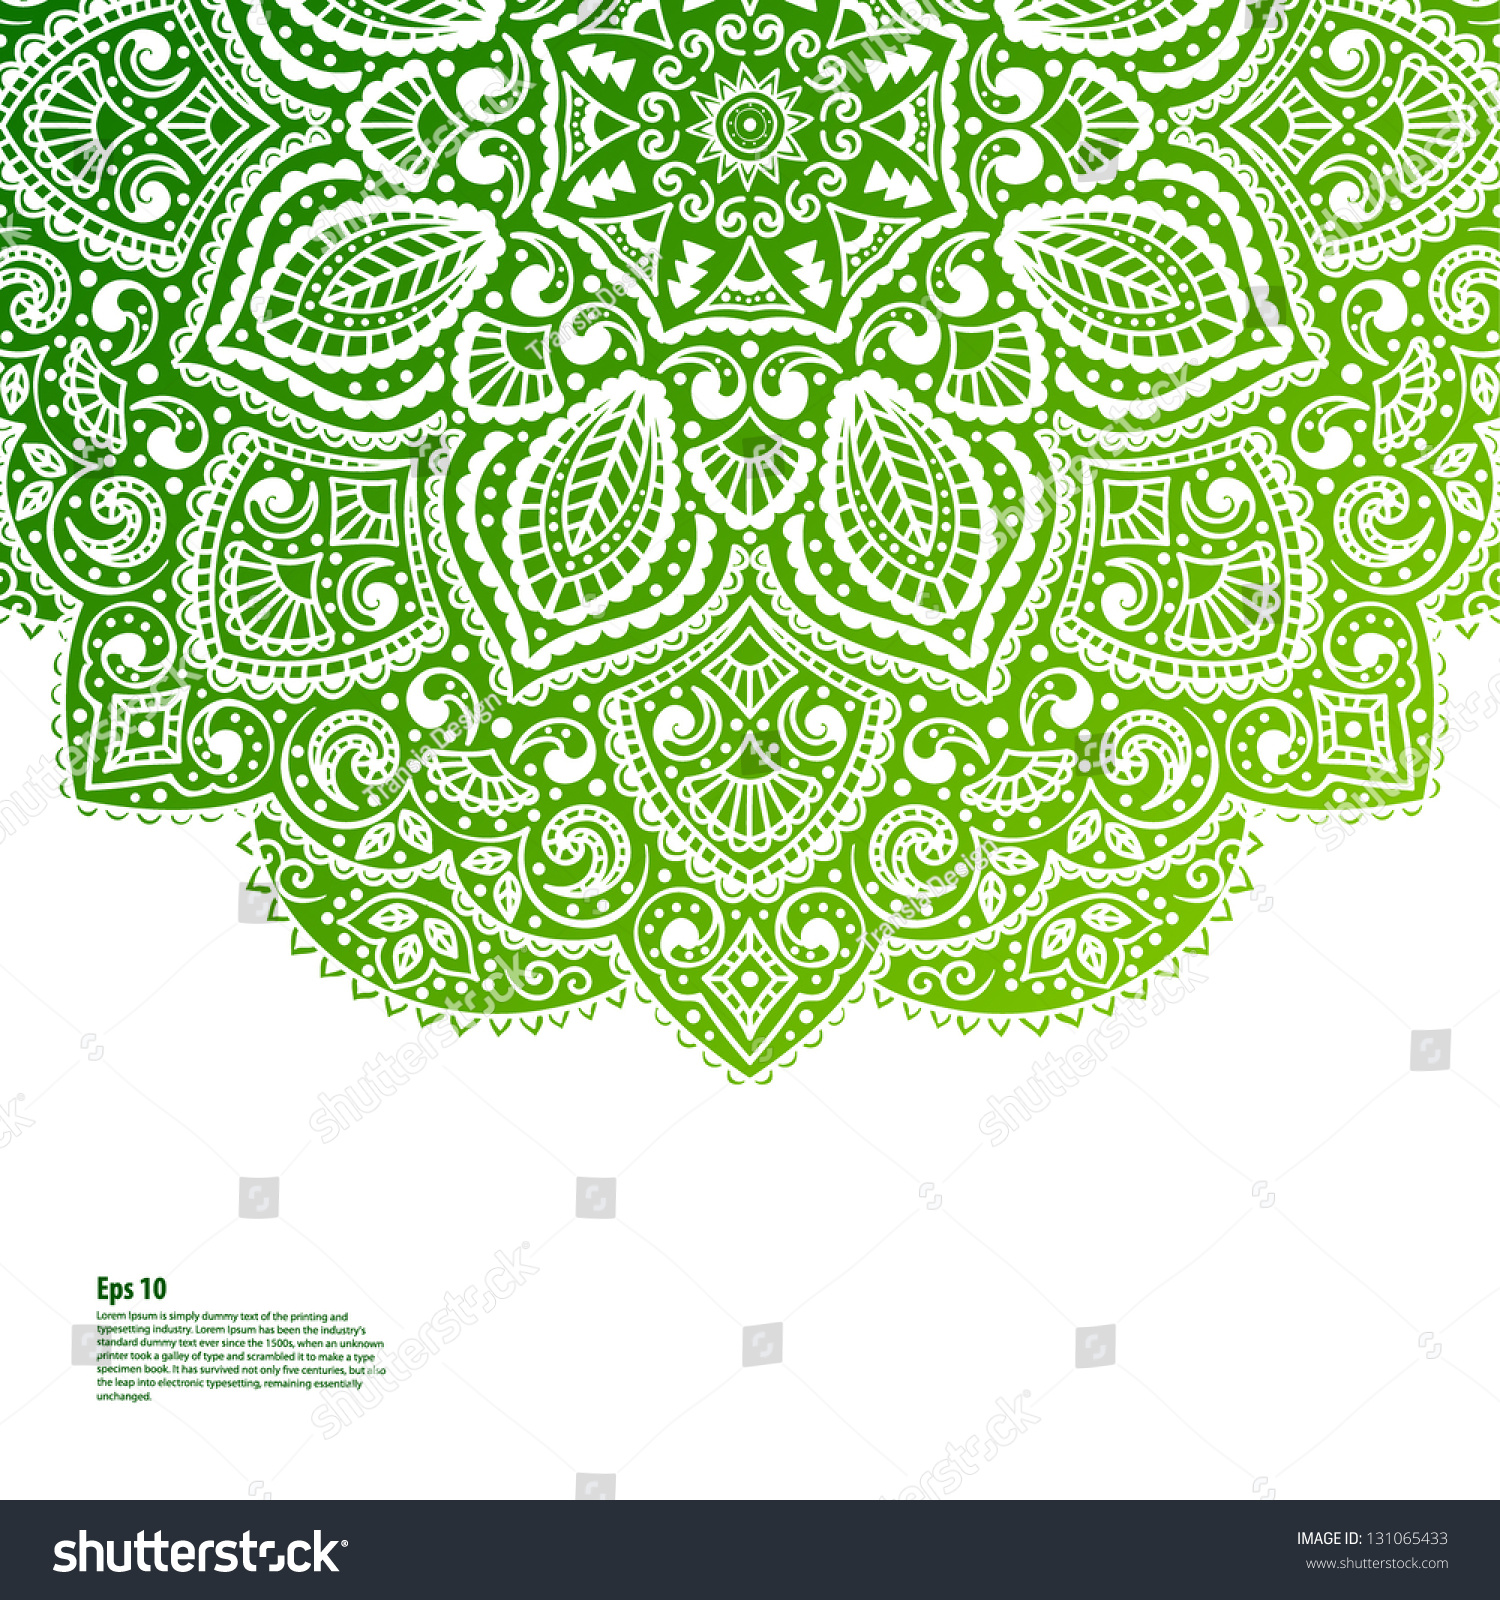 beautiful green ornament stock vector royalty free 131065433 https www shutterstock com image vector beautiful green ornament 131065433